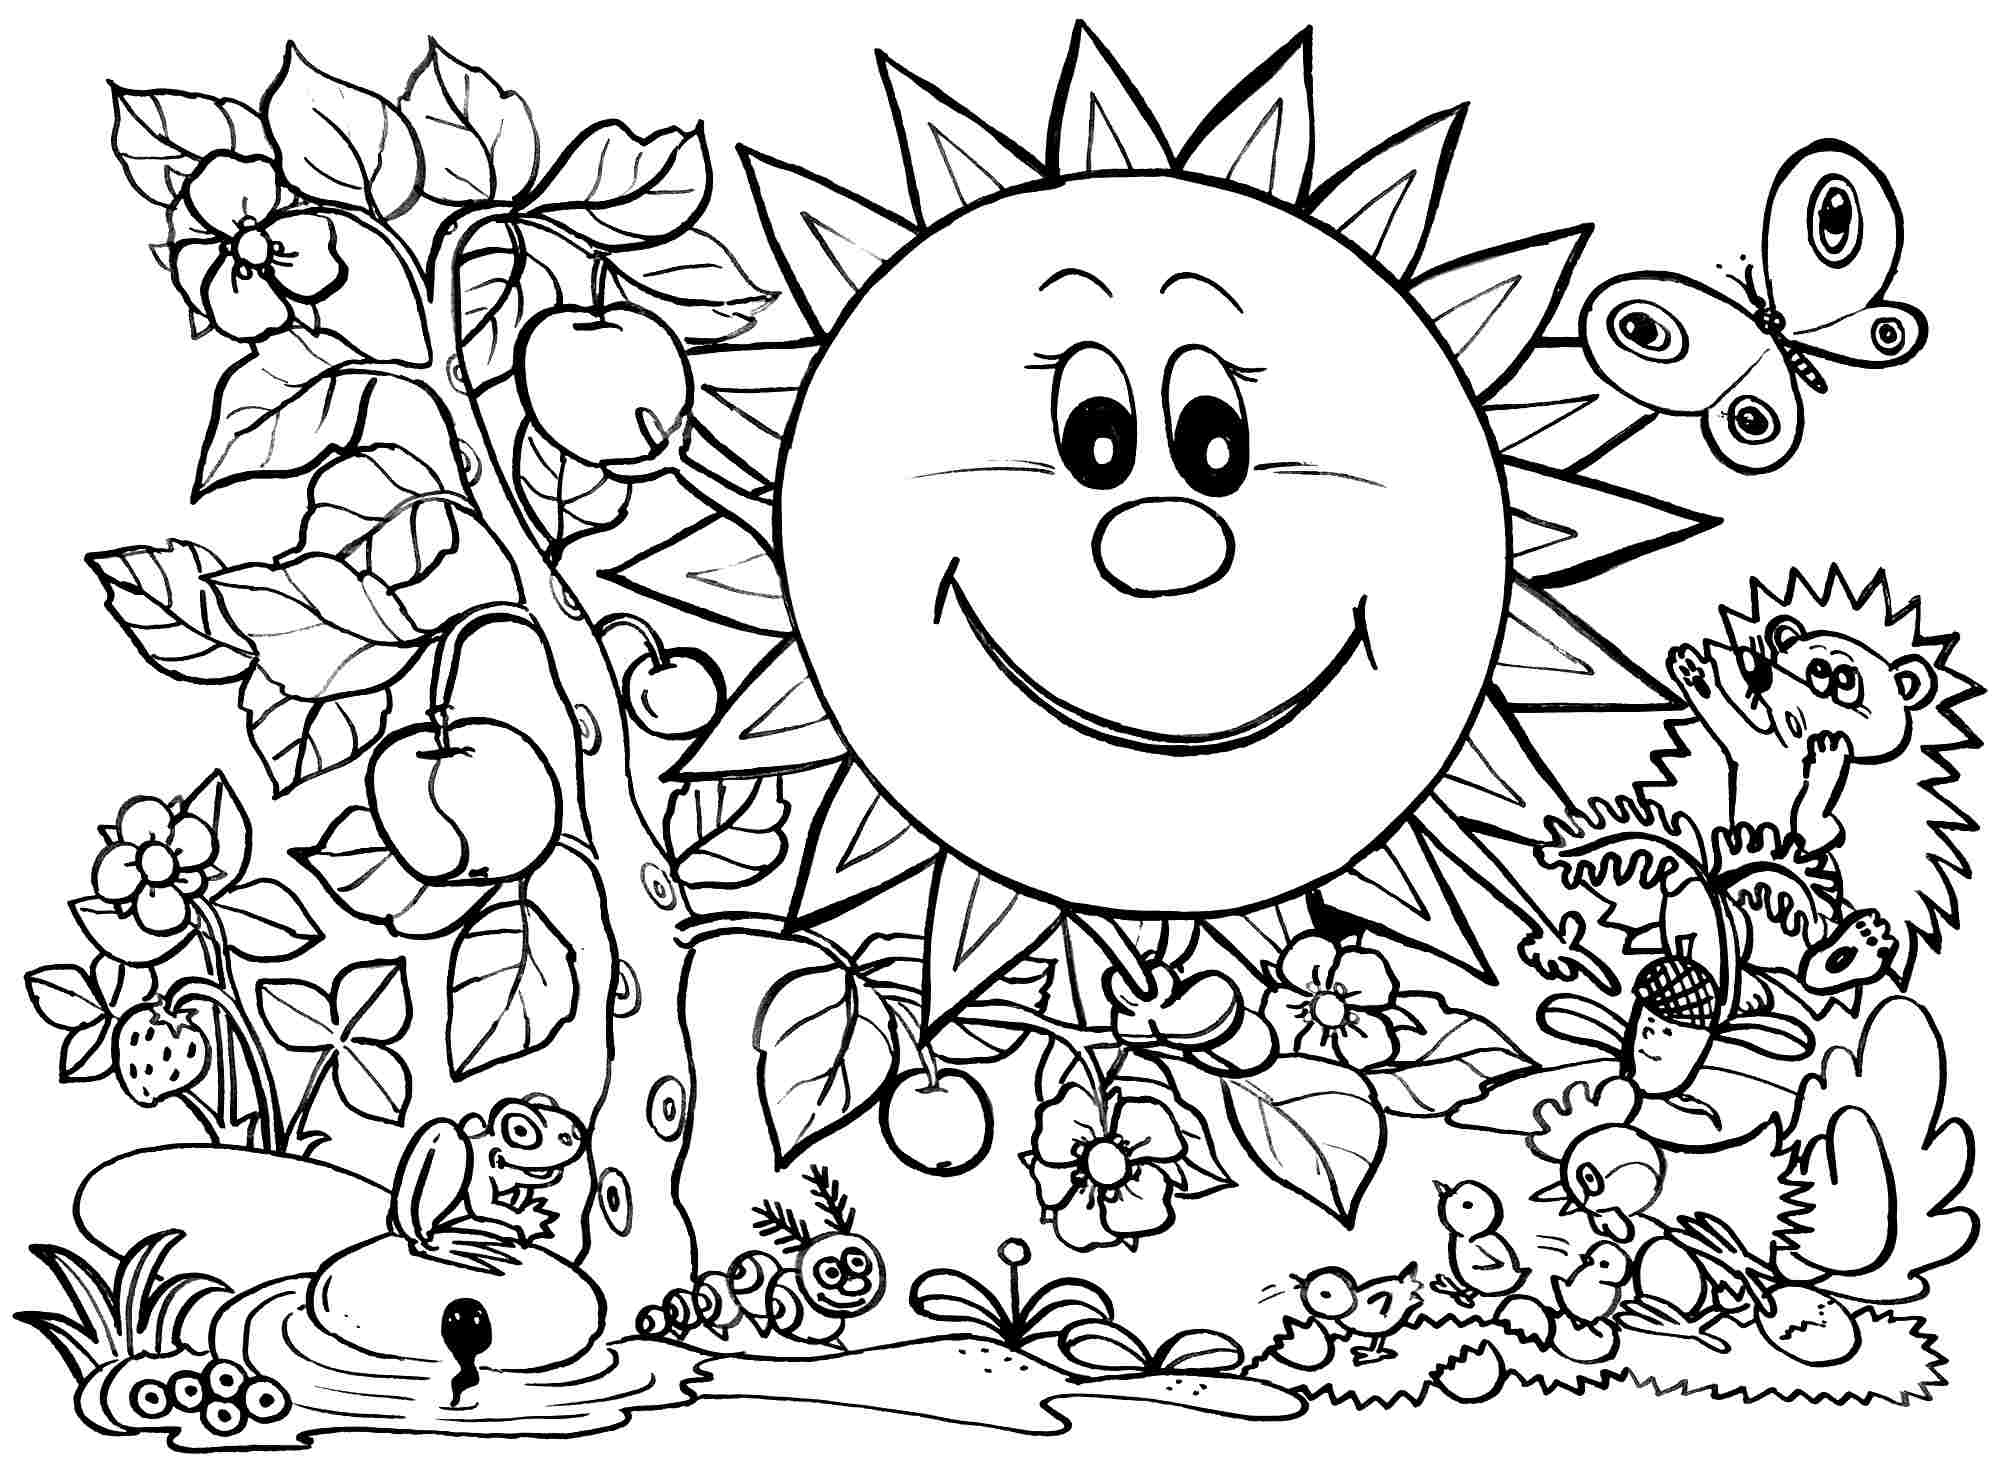 Coloring Pages : Spring Coloring Pages For Preschoolers Free Kids - Spring Coloring Sheets Free Printable